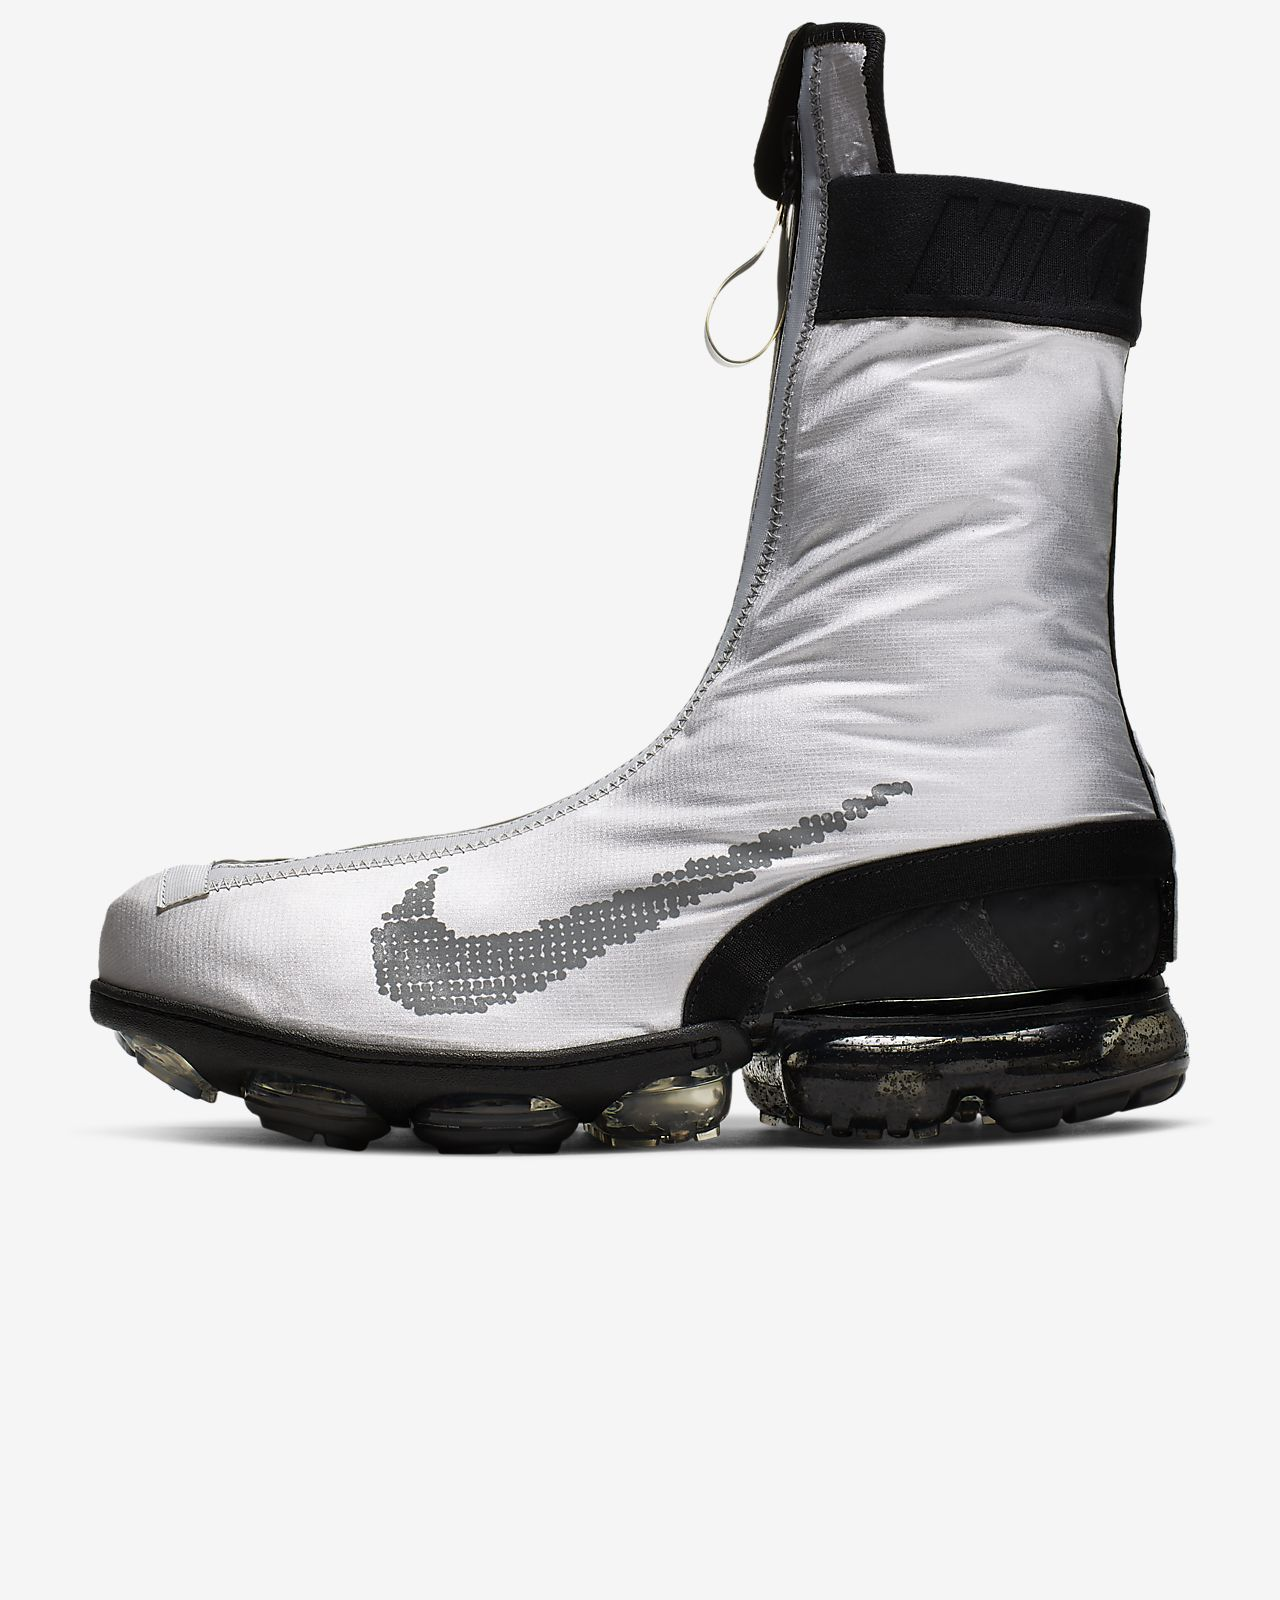 best authentic factory outlets quality Chaussure Nike Air VaporMax Flyknit Gaiter ISPA